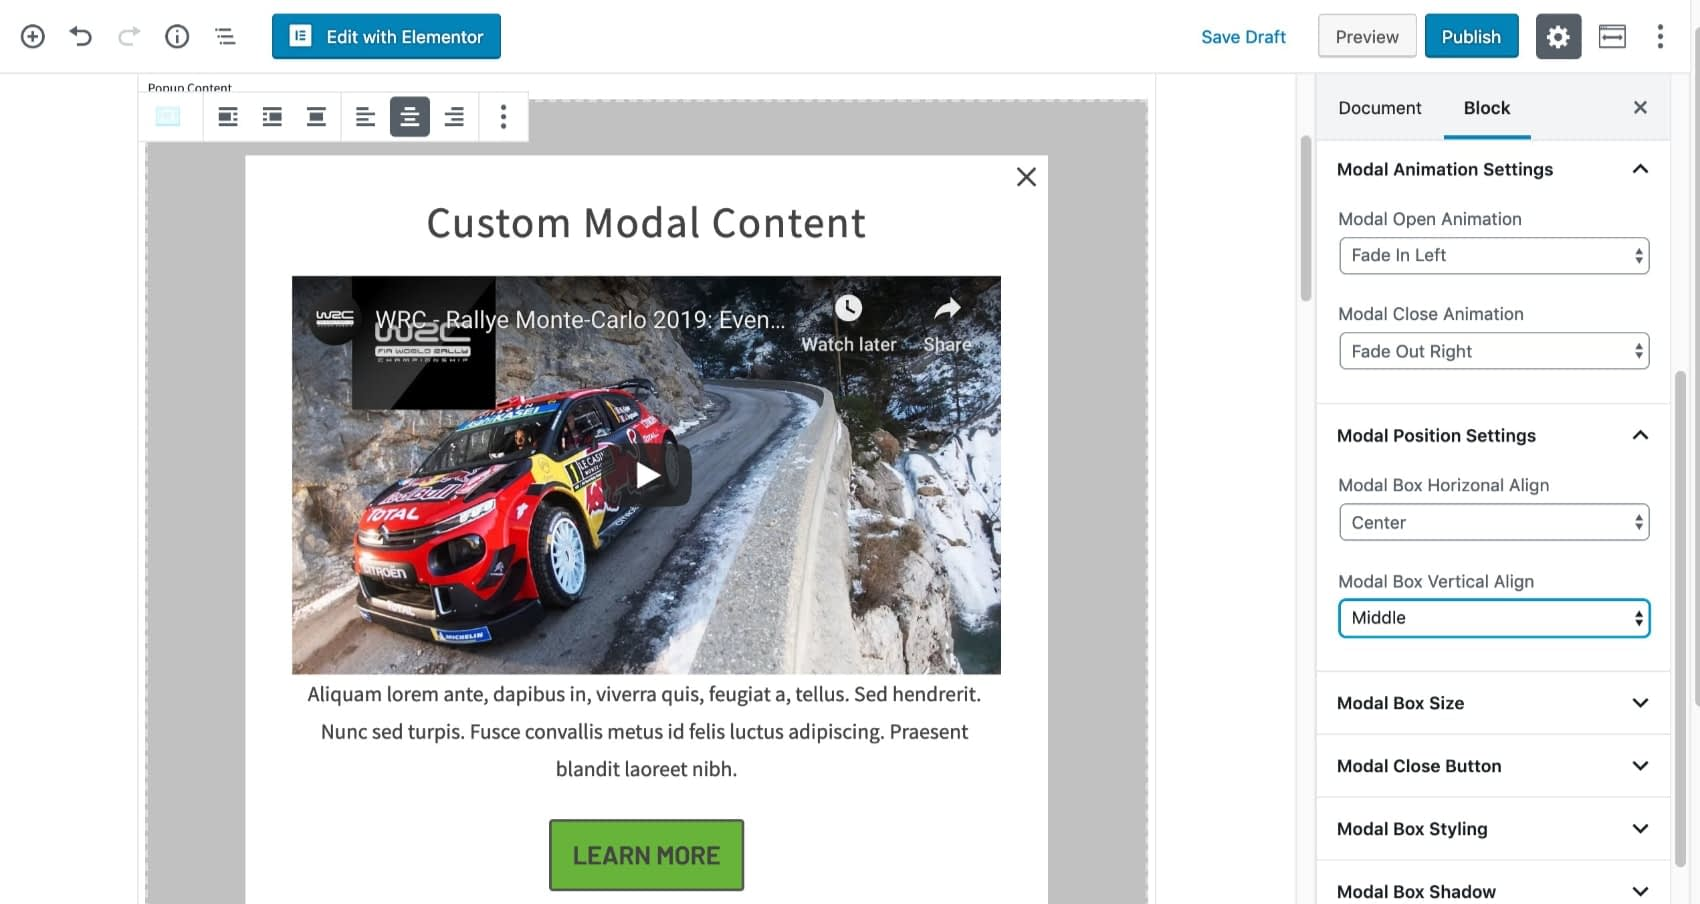 Modal Animation and Position